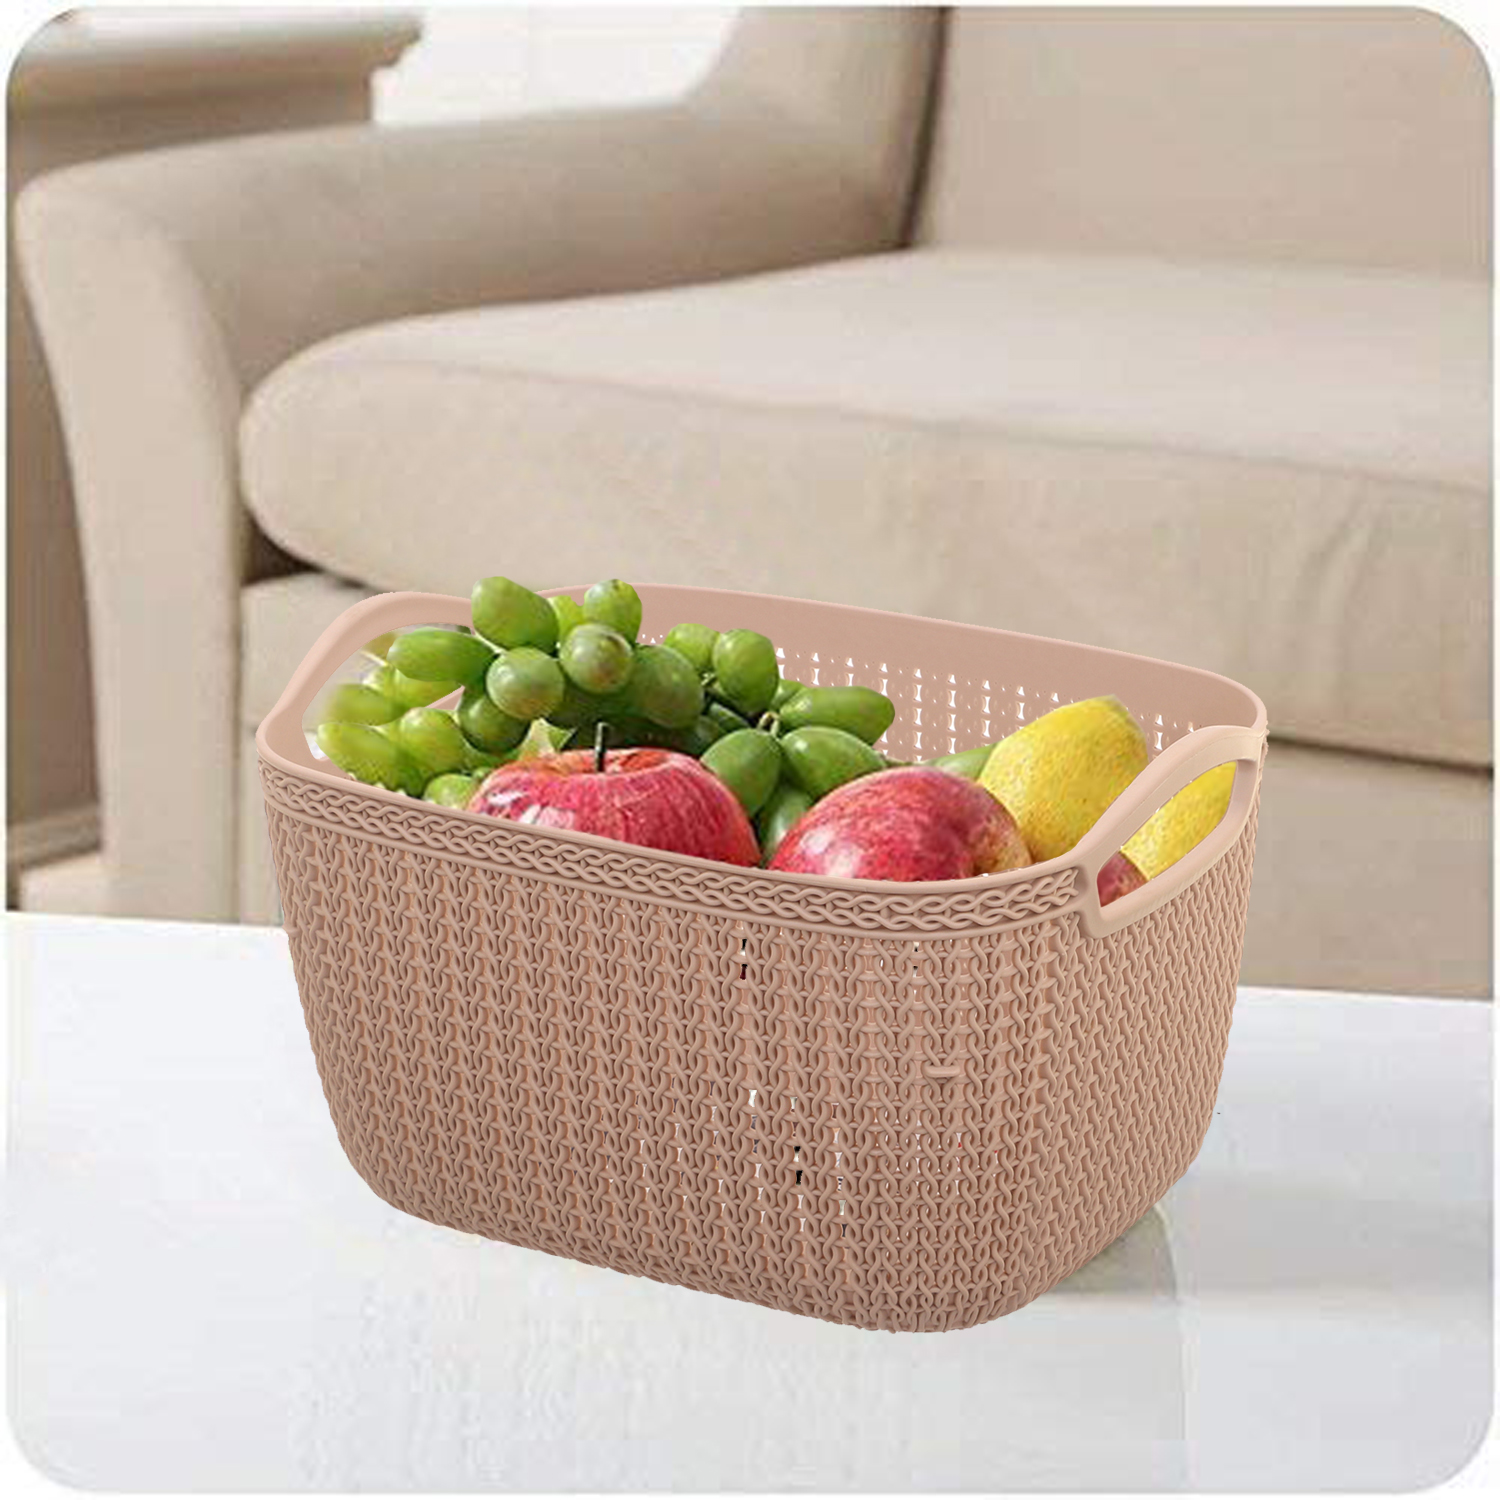 Kuber Industries Unbreakable Plastic Multipurpose Large Size Flexible Storage Baskets/Fruit Vegetable Kitchen Organizer with Handles (peach) - CTKTC30615